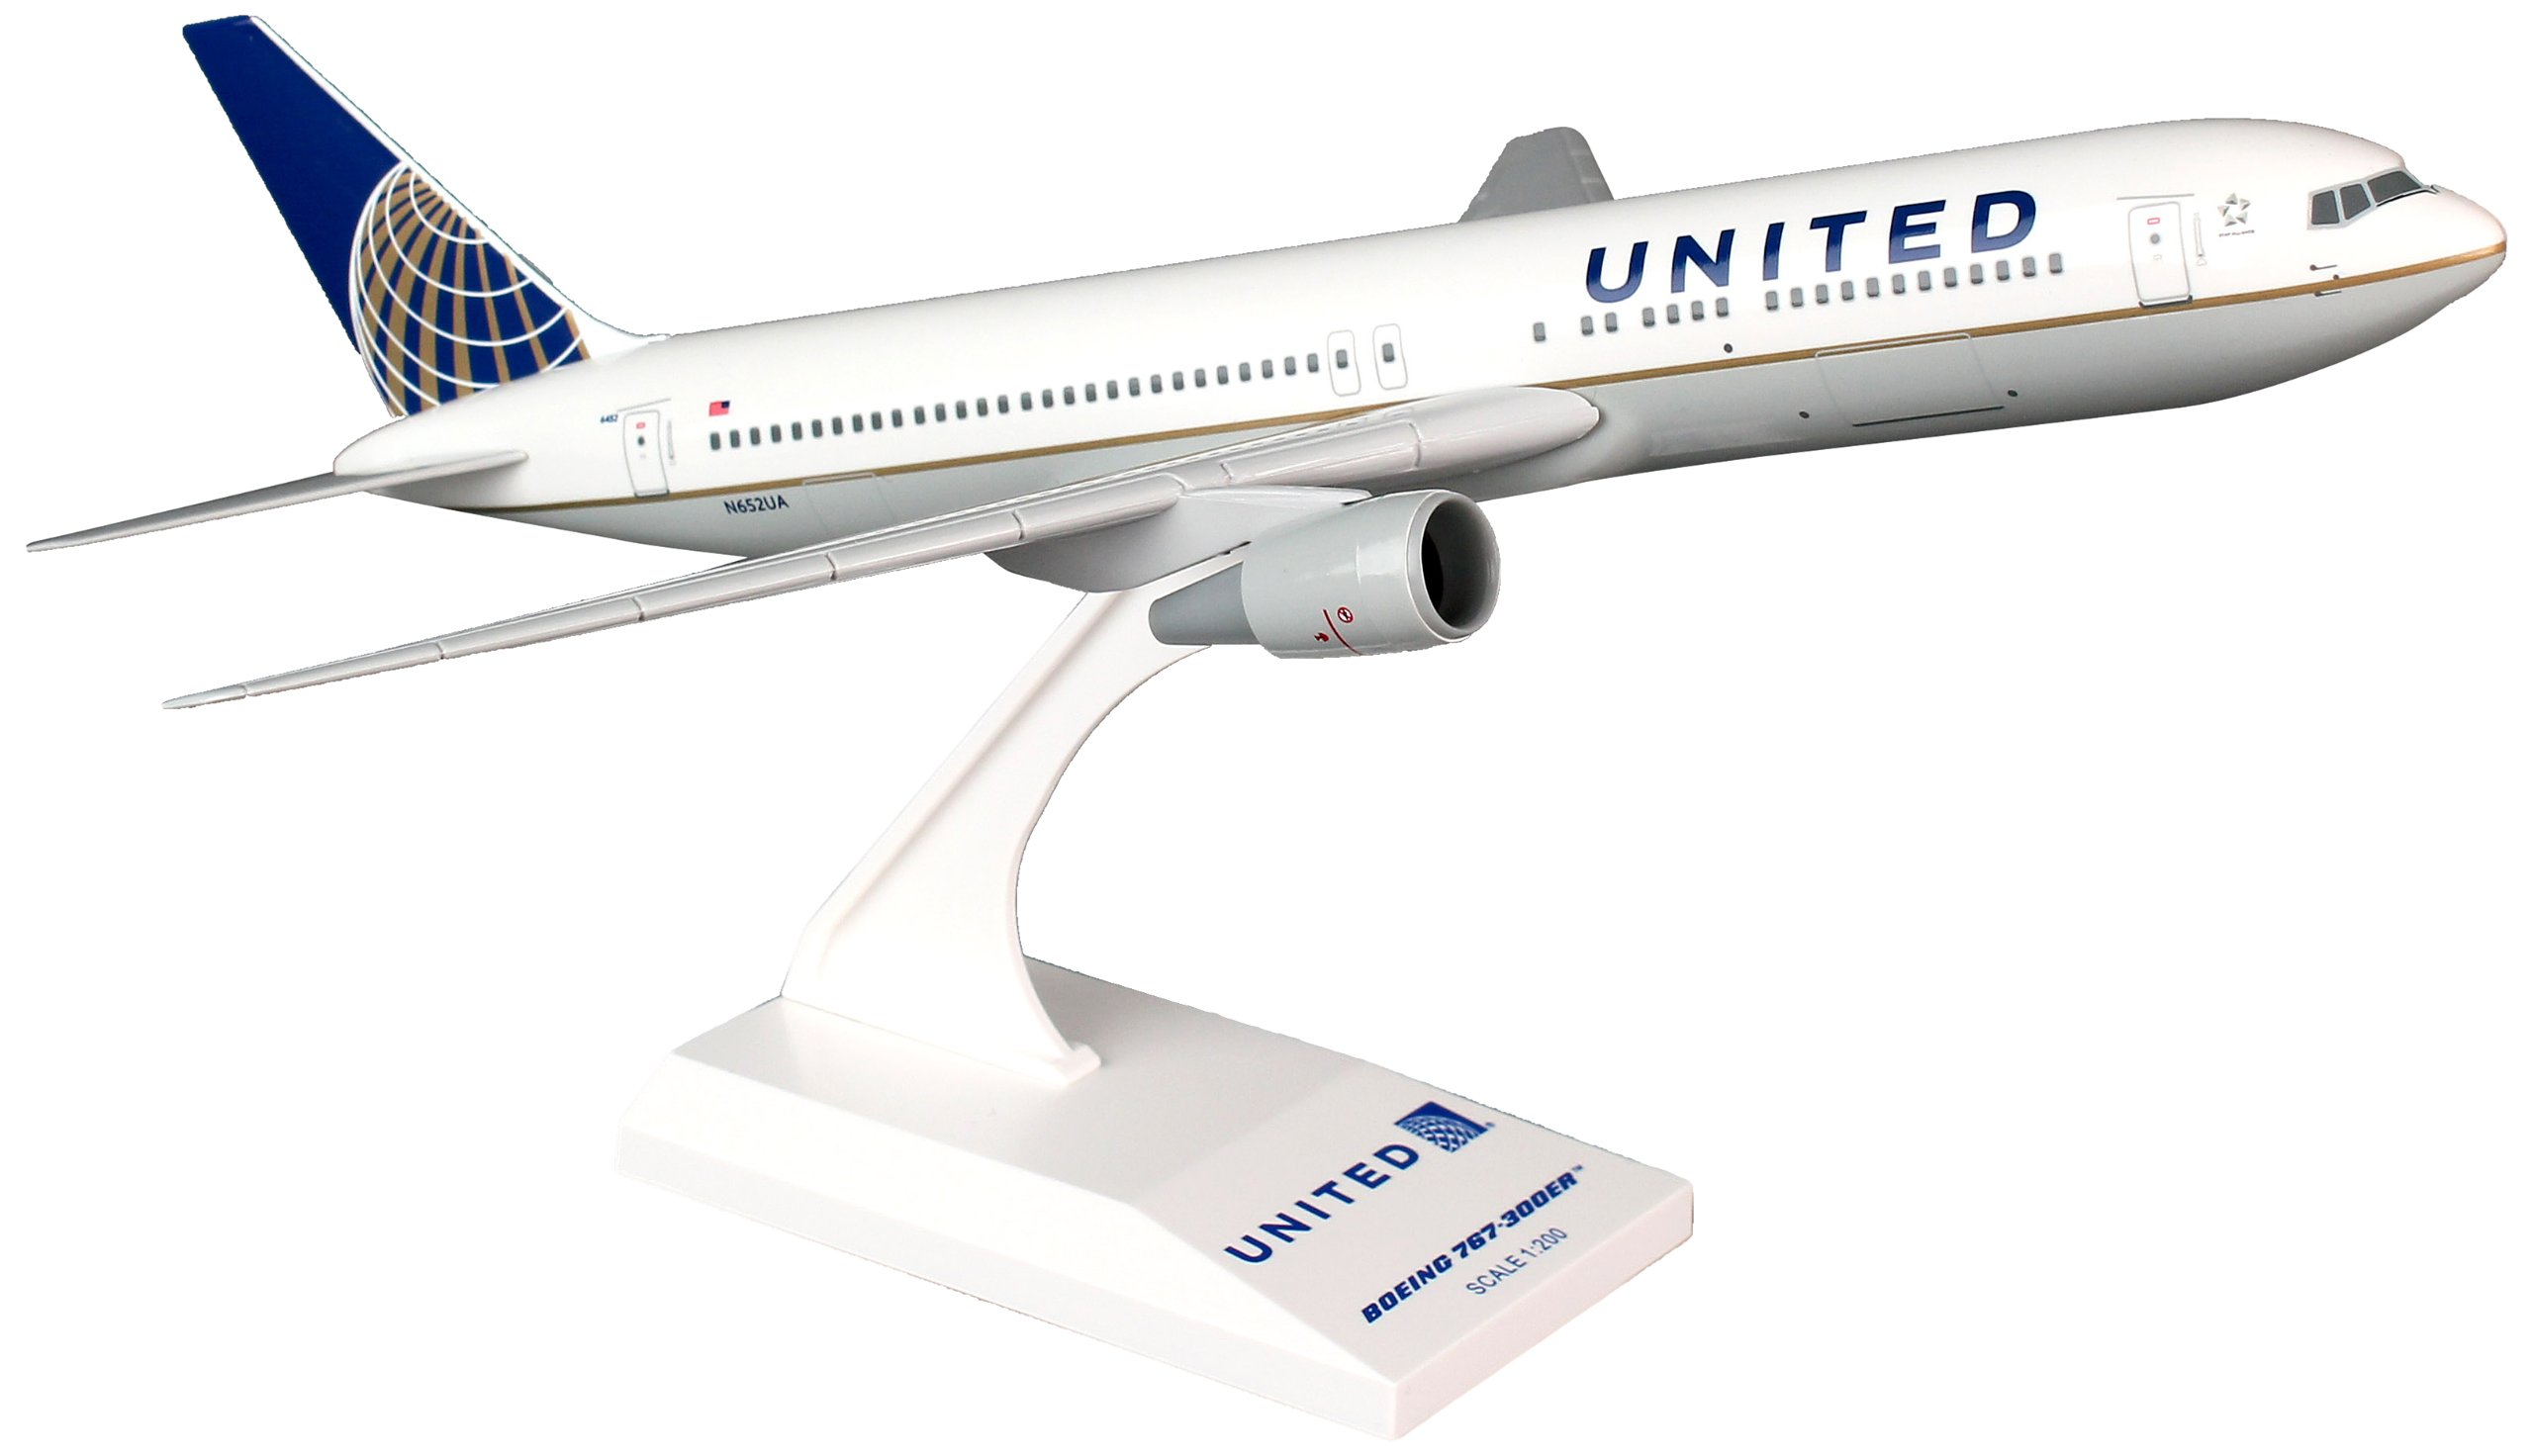 Daron Skymarks United 767-300 New Livery Model Kit (1/200 Scale) by Daron